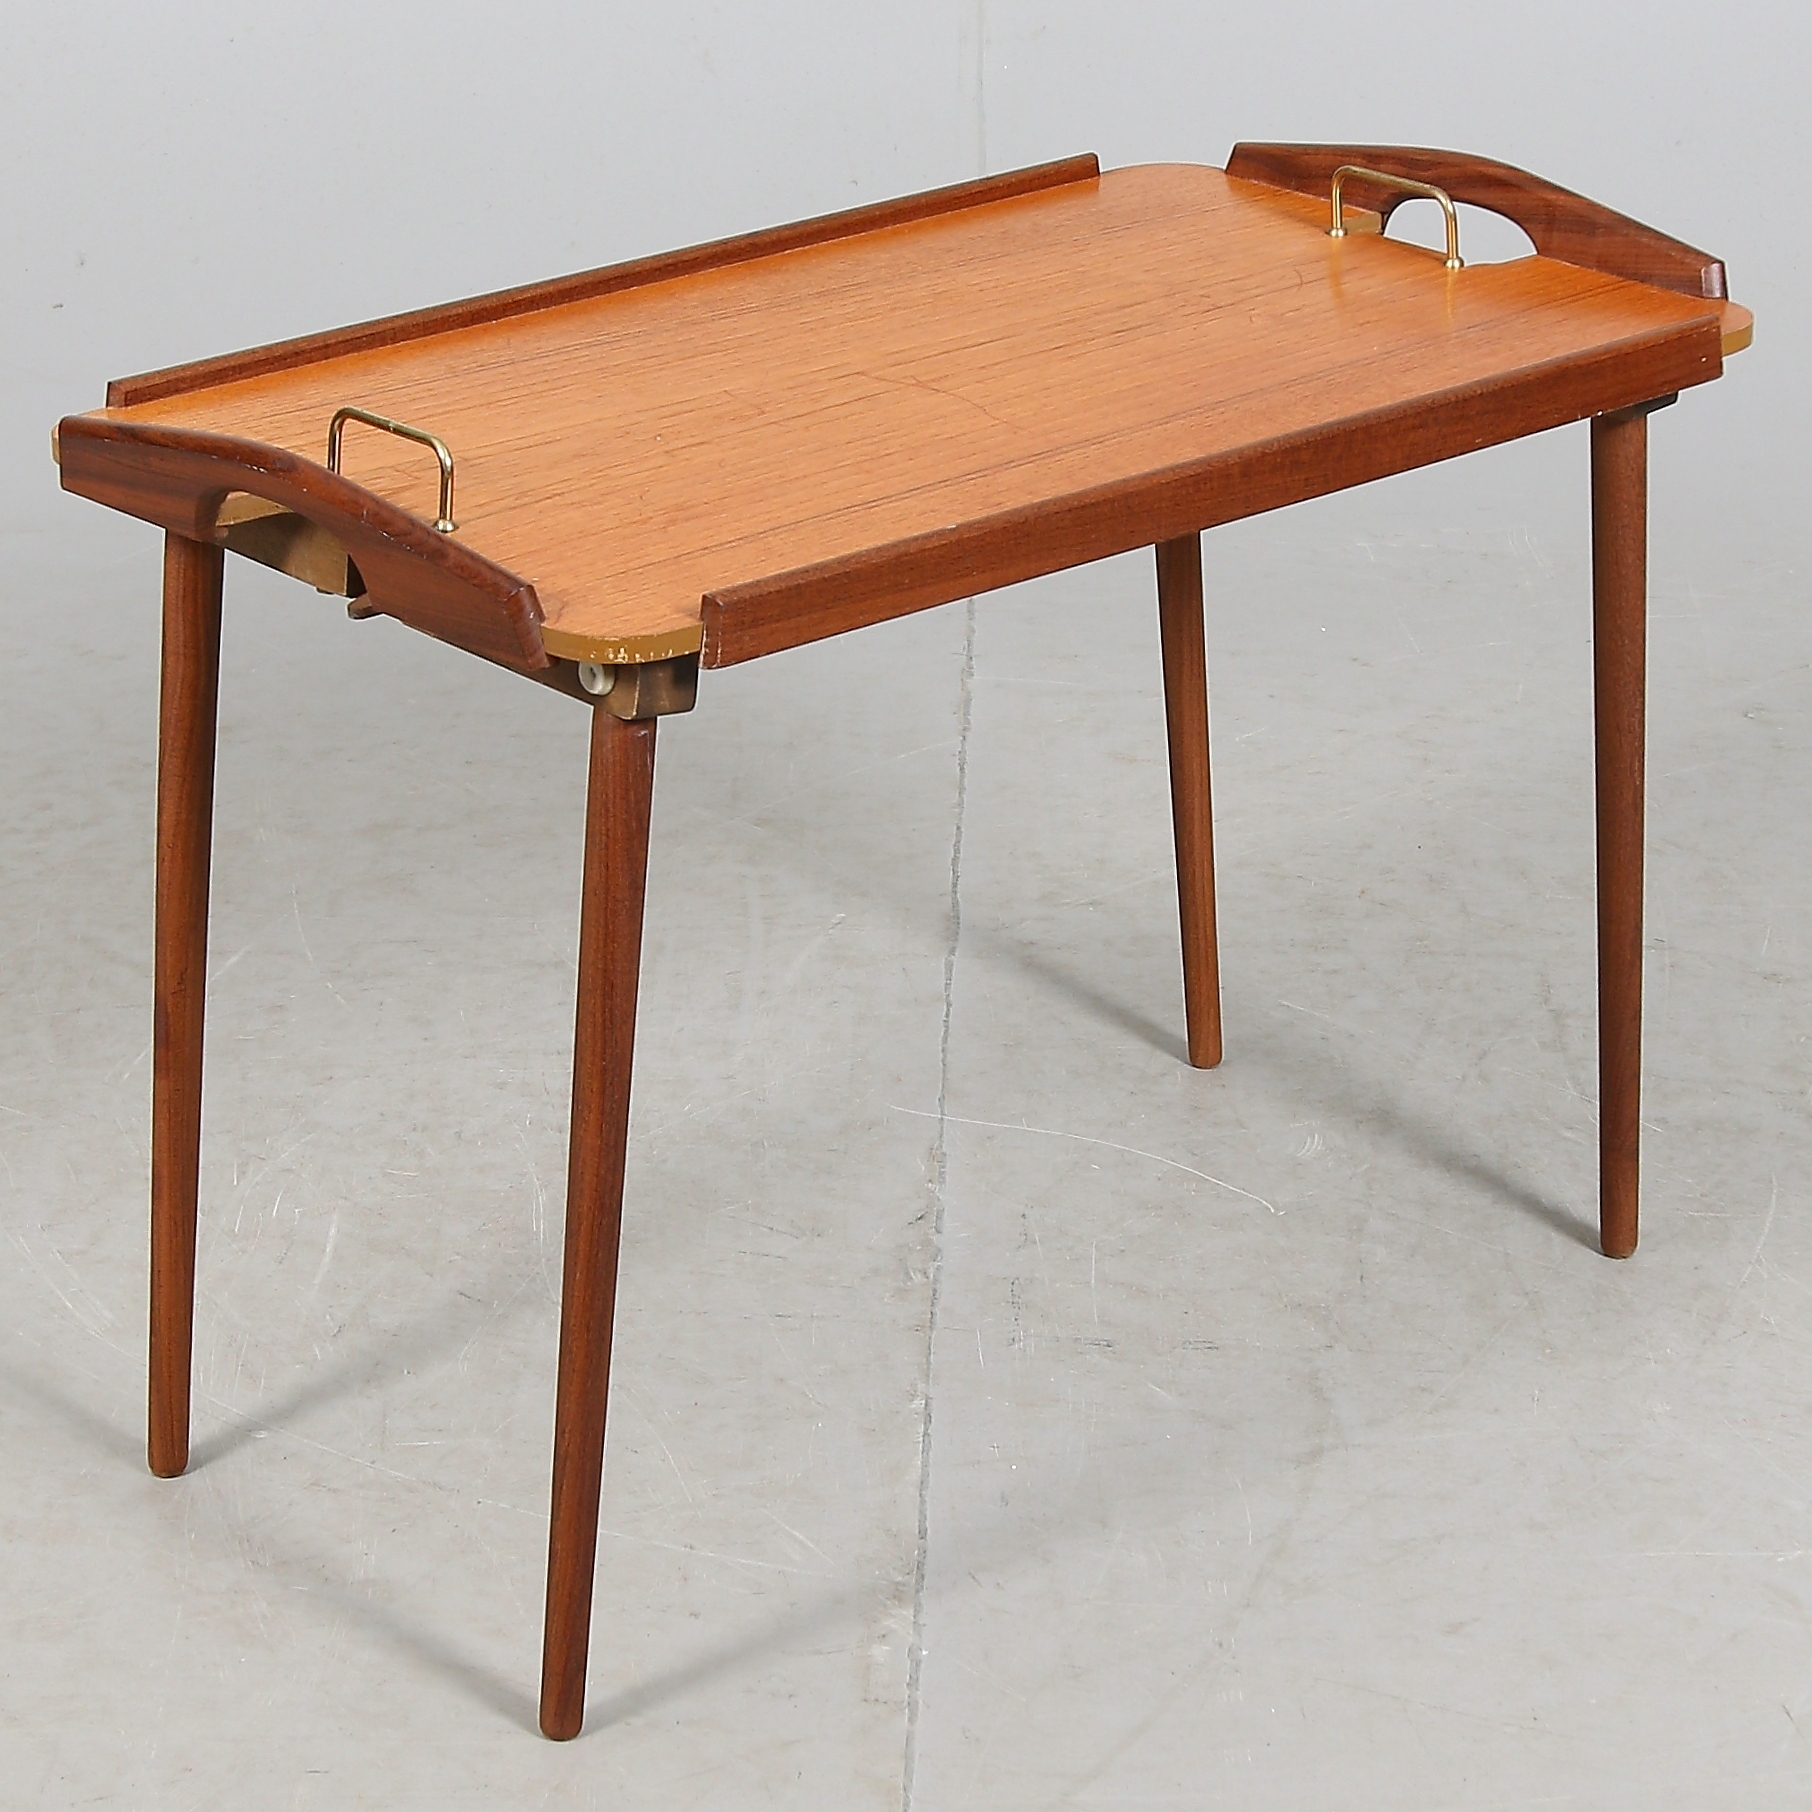 Brickbord Teak Aase Mobler Norge 1950 60 Tal Furniture Tables